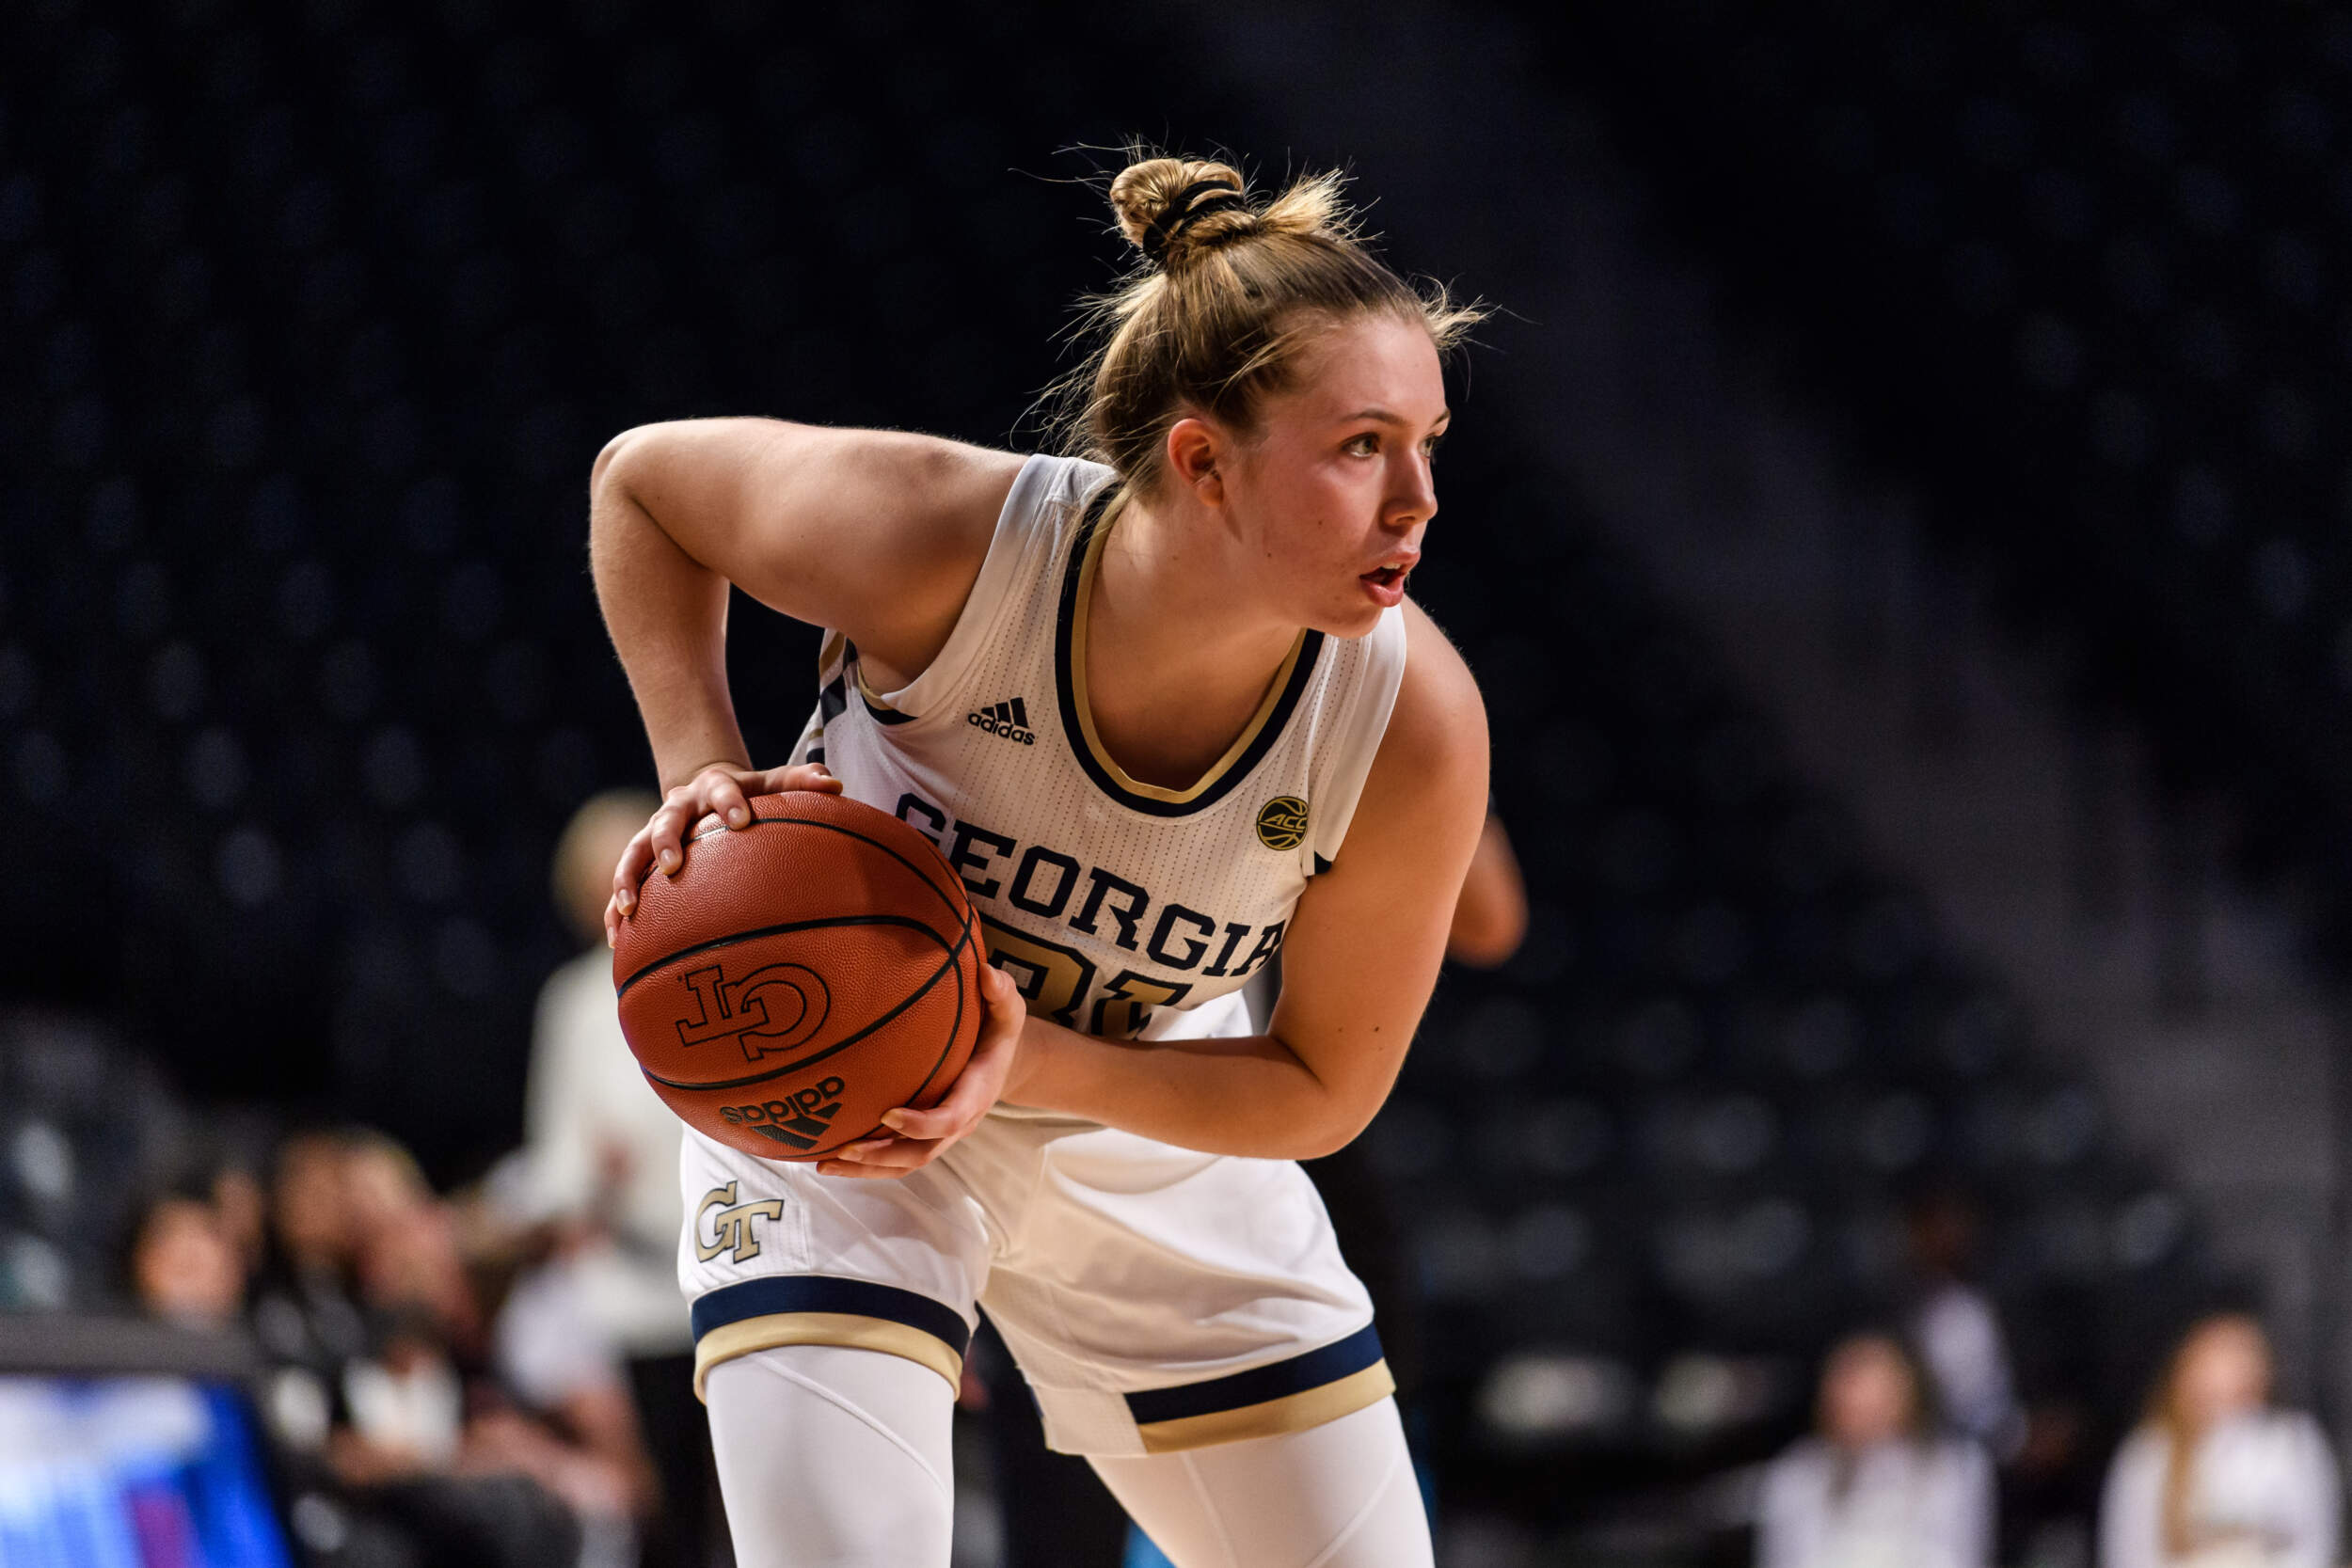 Lahtinen Leads Tech Past Kennesaw State, 63-47